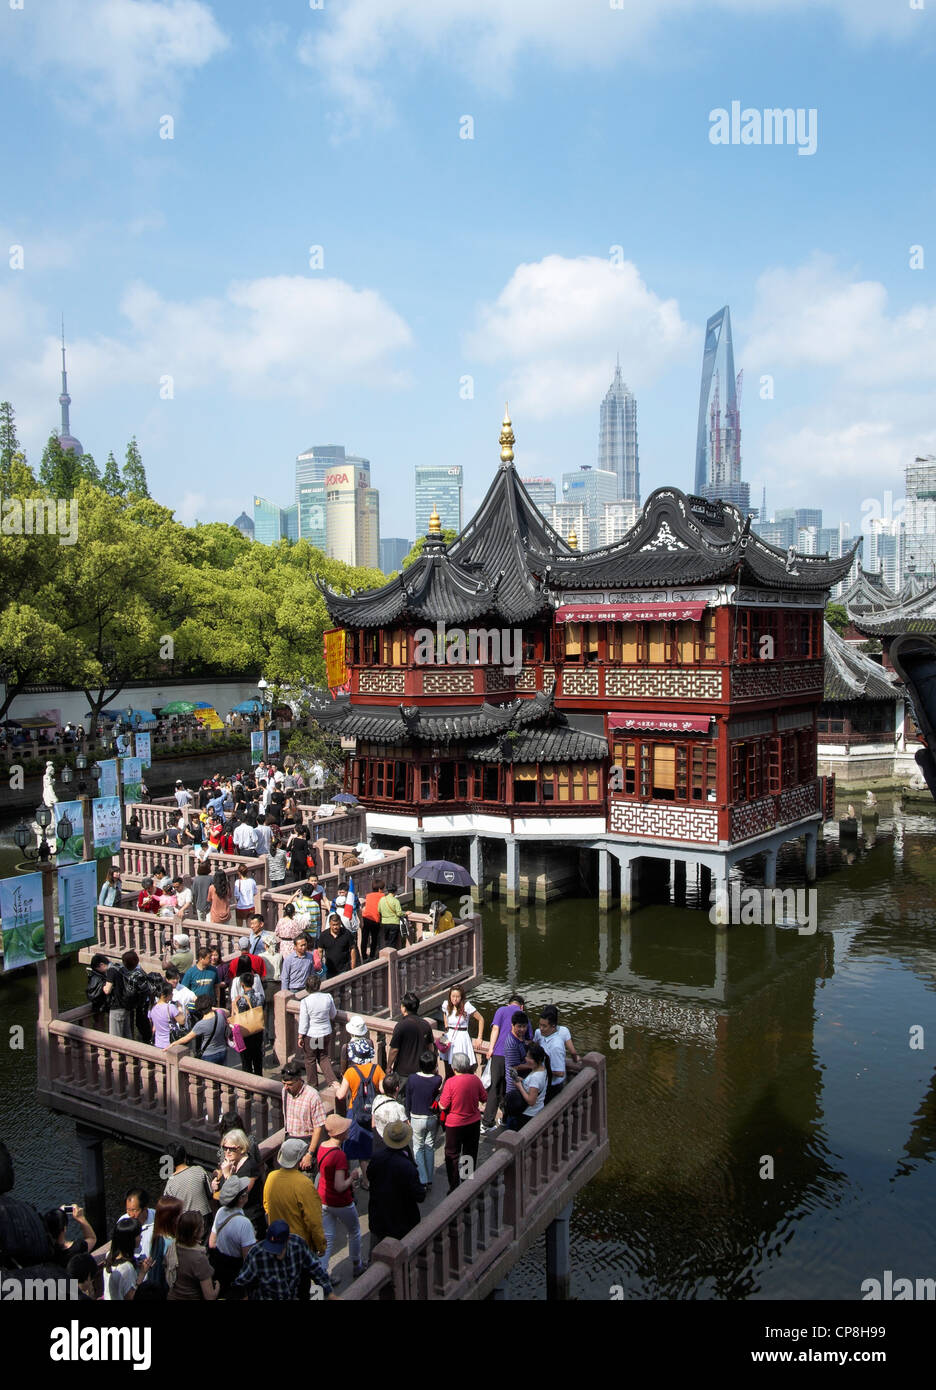 View of teahouse in YuYuan Garden in Shanghai China - Stock Image